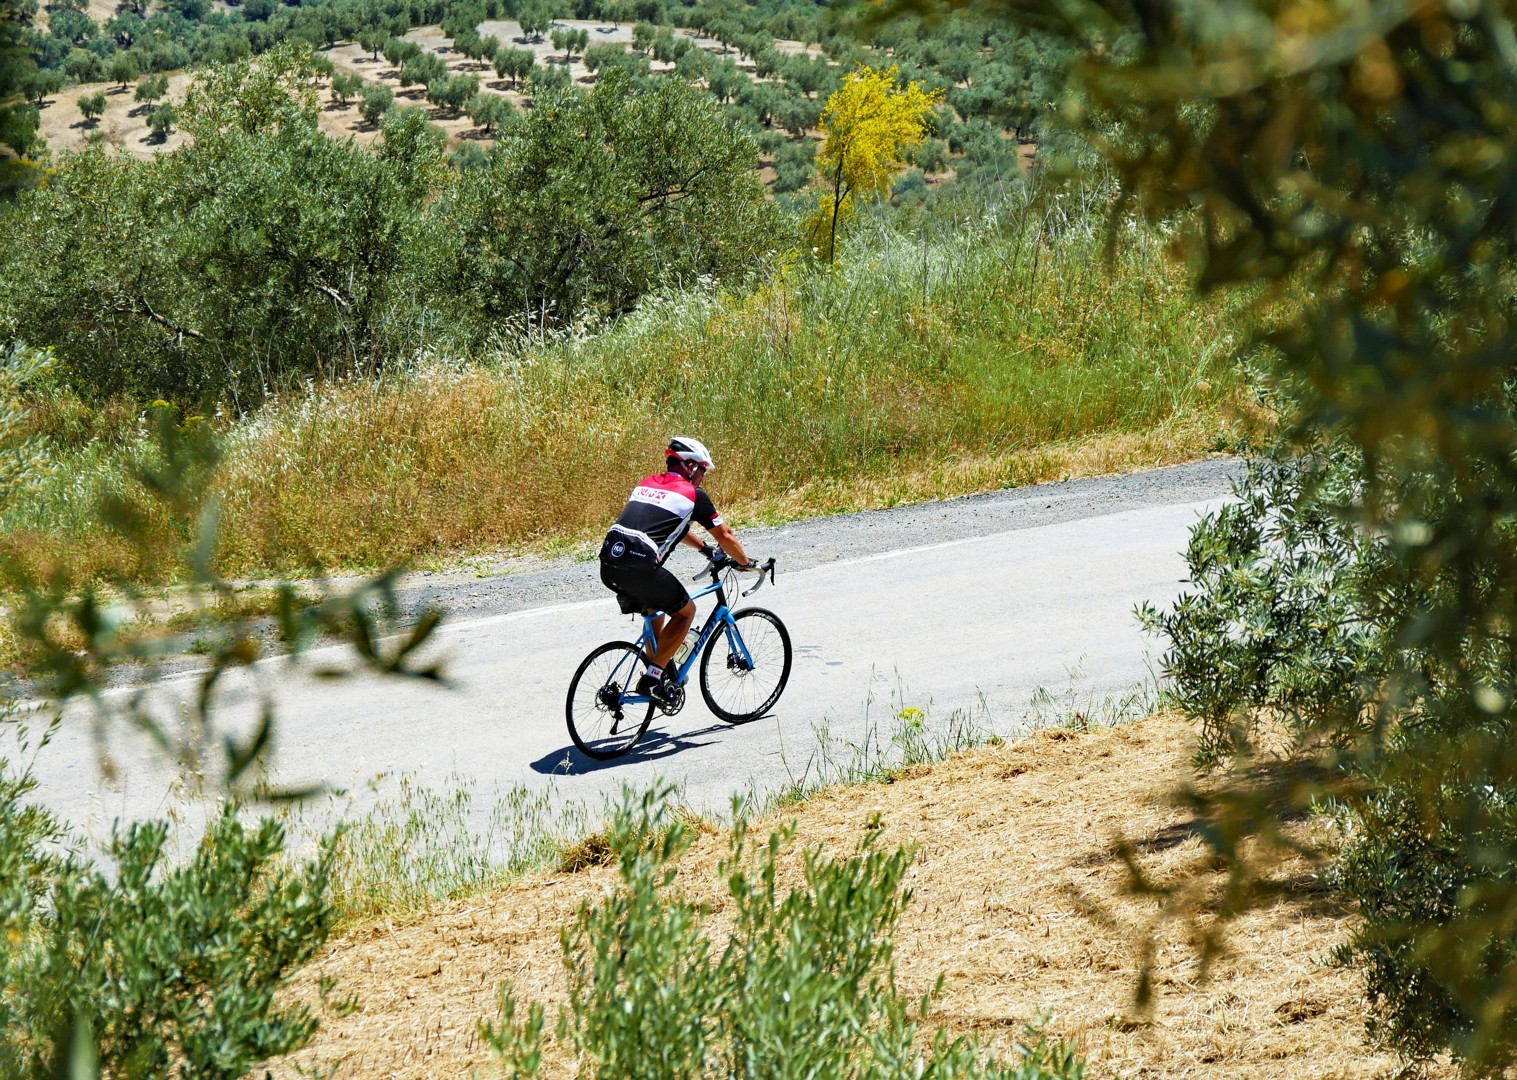 road-cycling-through-olive-groves-andalucia.jpg - Spain - Del Norte al Sur - Basque Country to Andalucia - Guided Road Cycling Holiday - Road Cycling